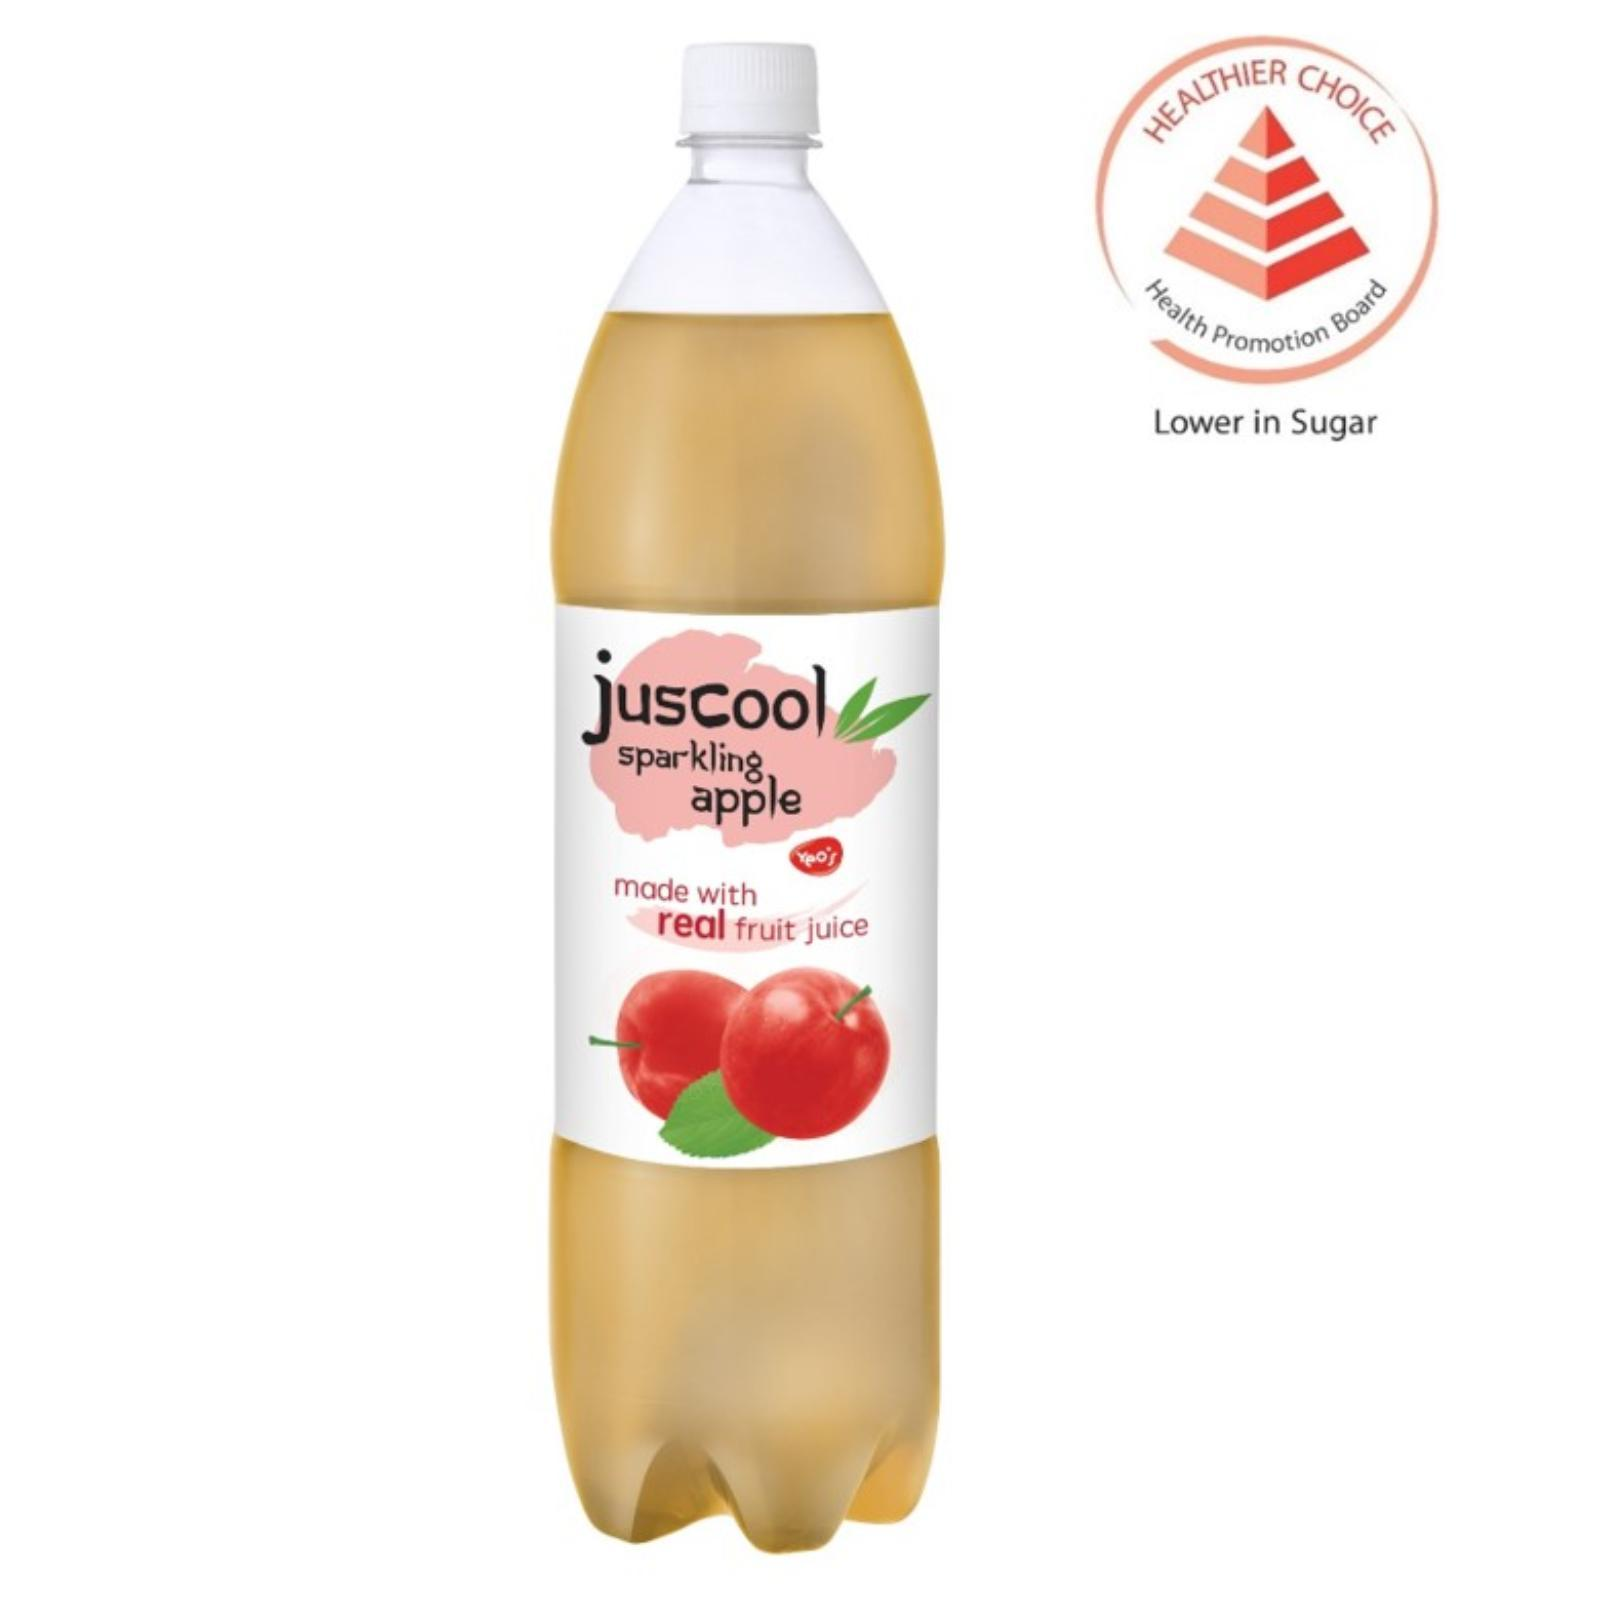 Yeo's JusCool Sparkling Apple Juice Drink